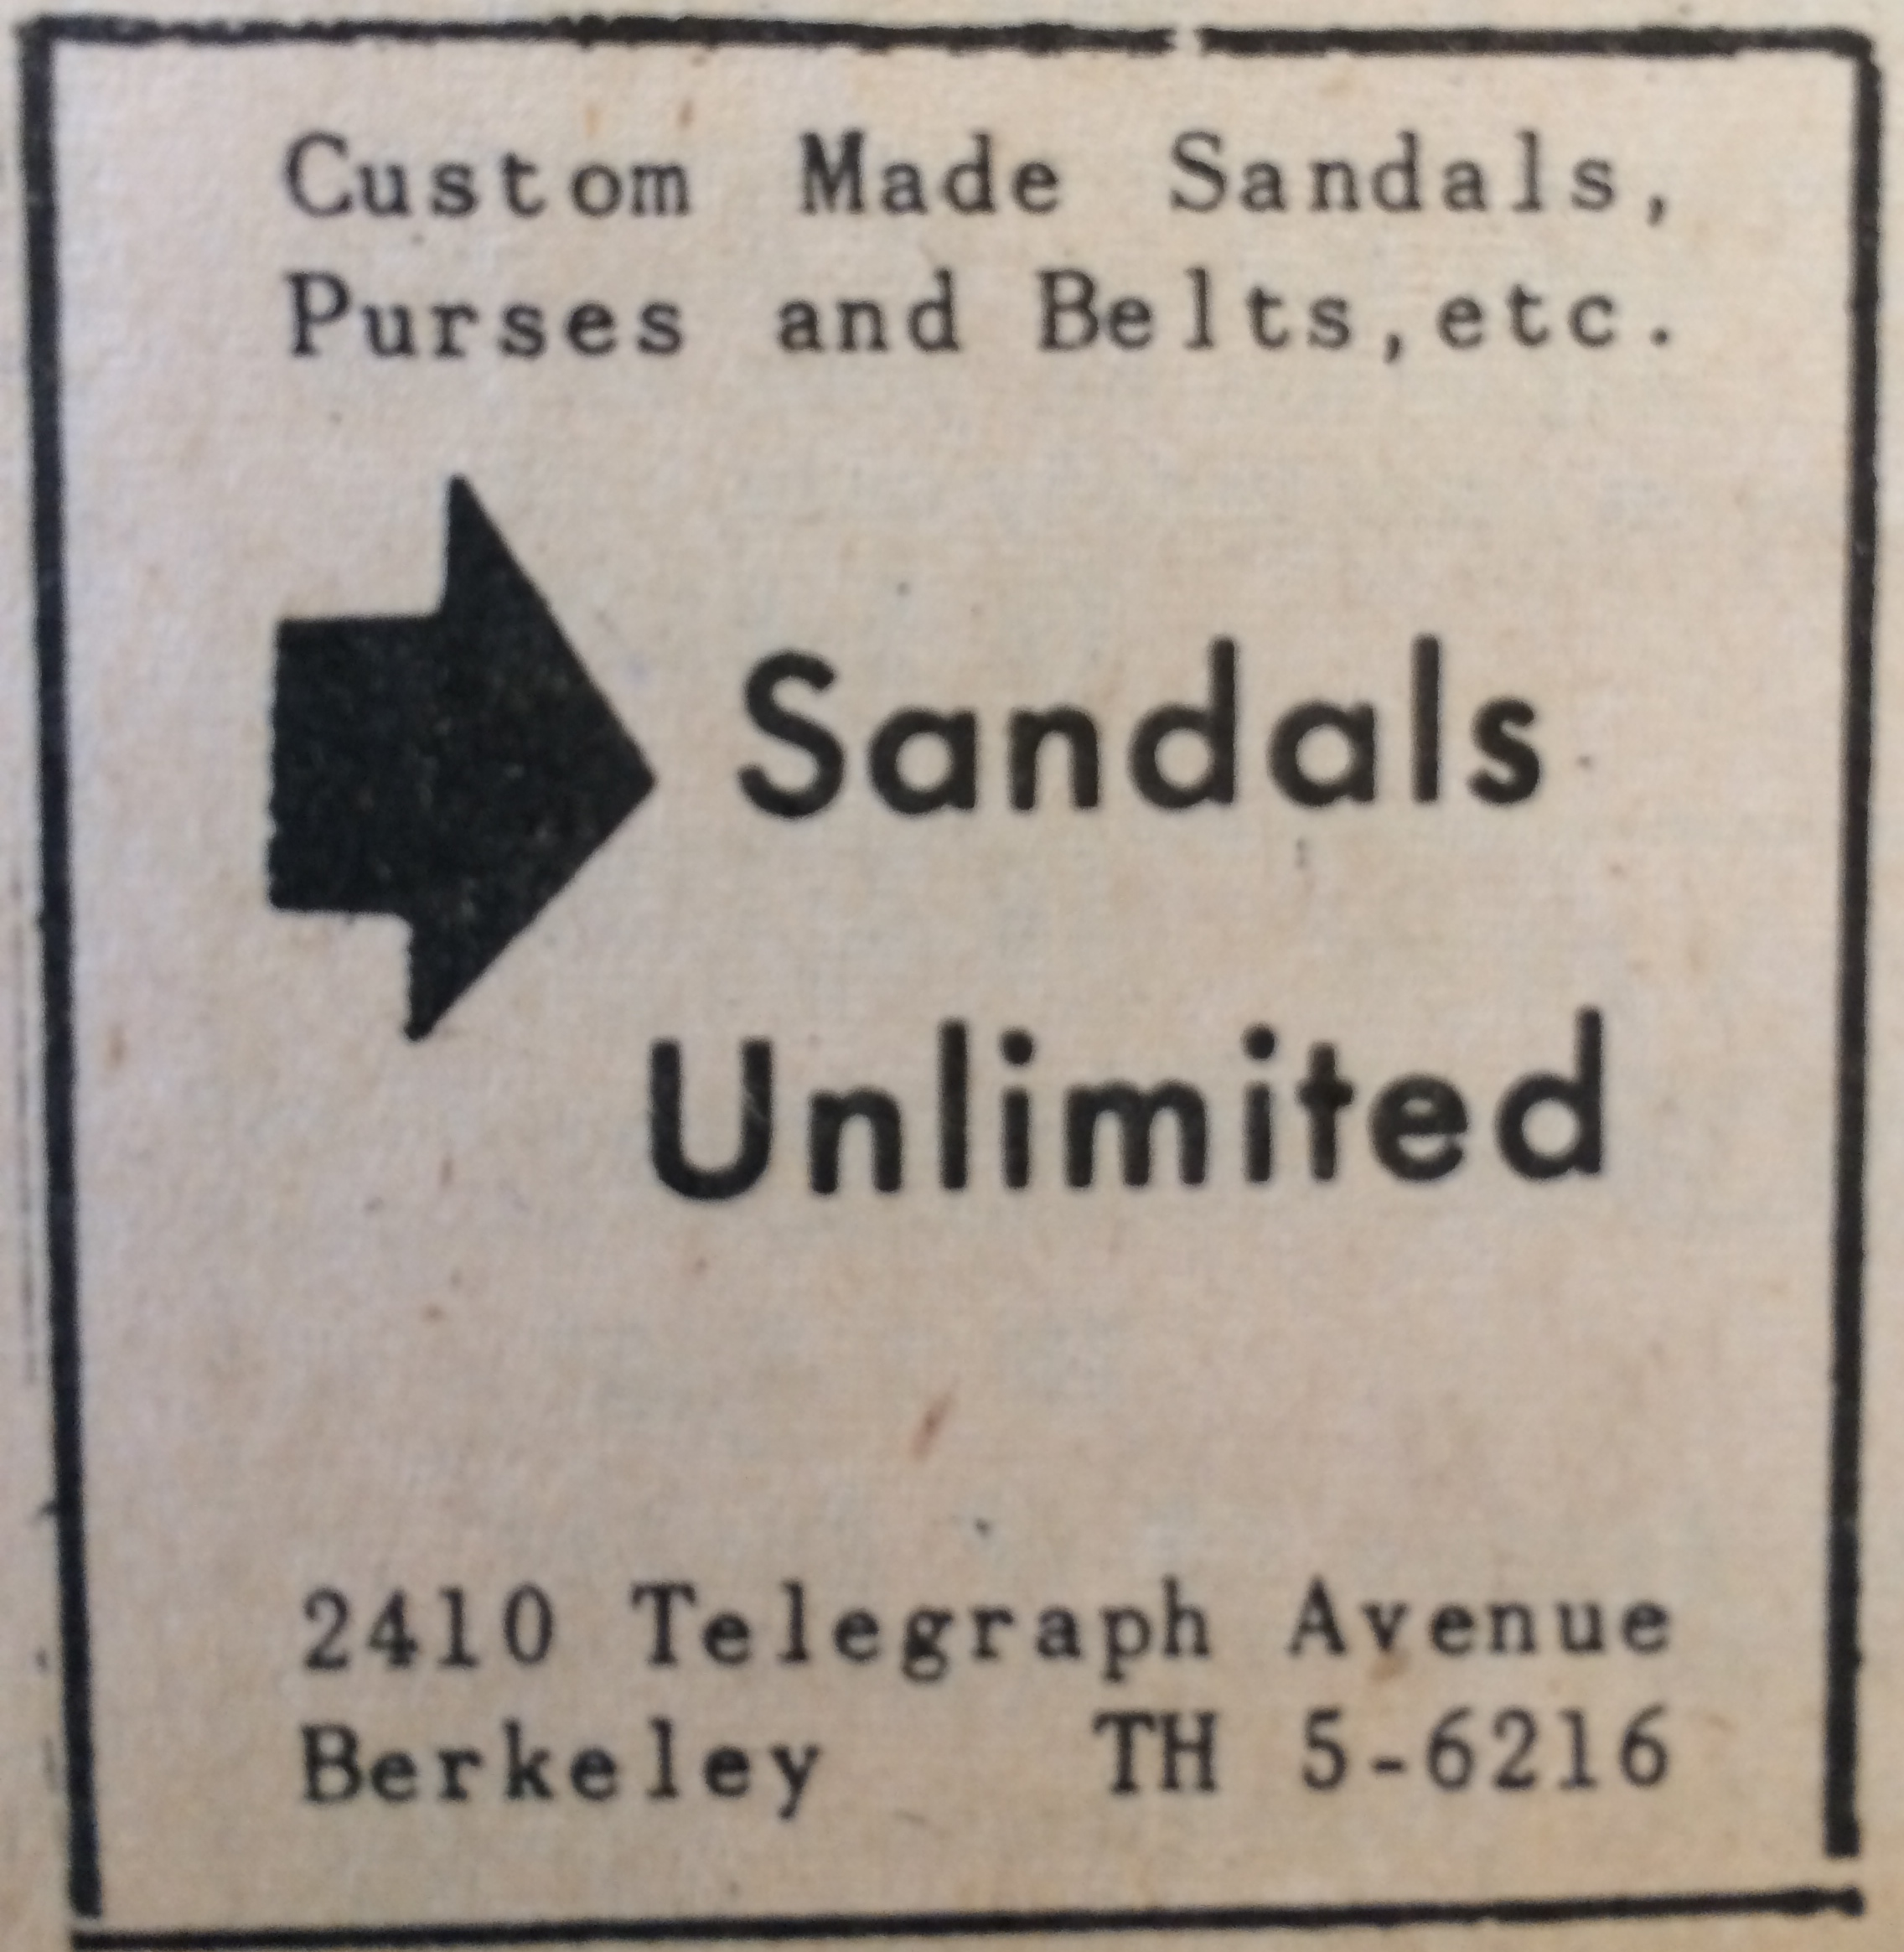 Sandals Unlimited copy